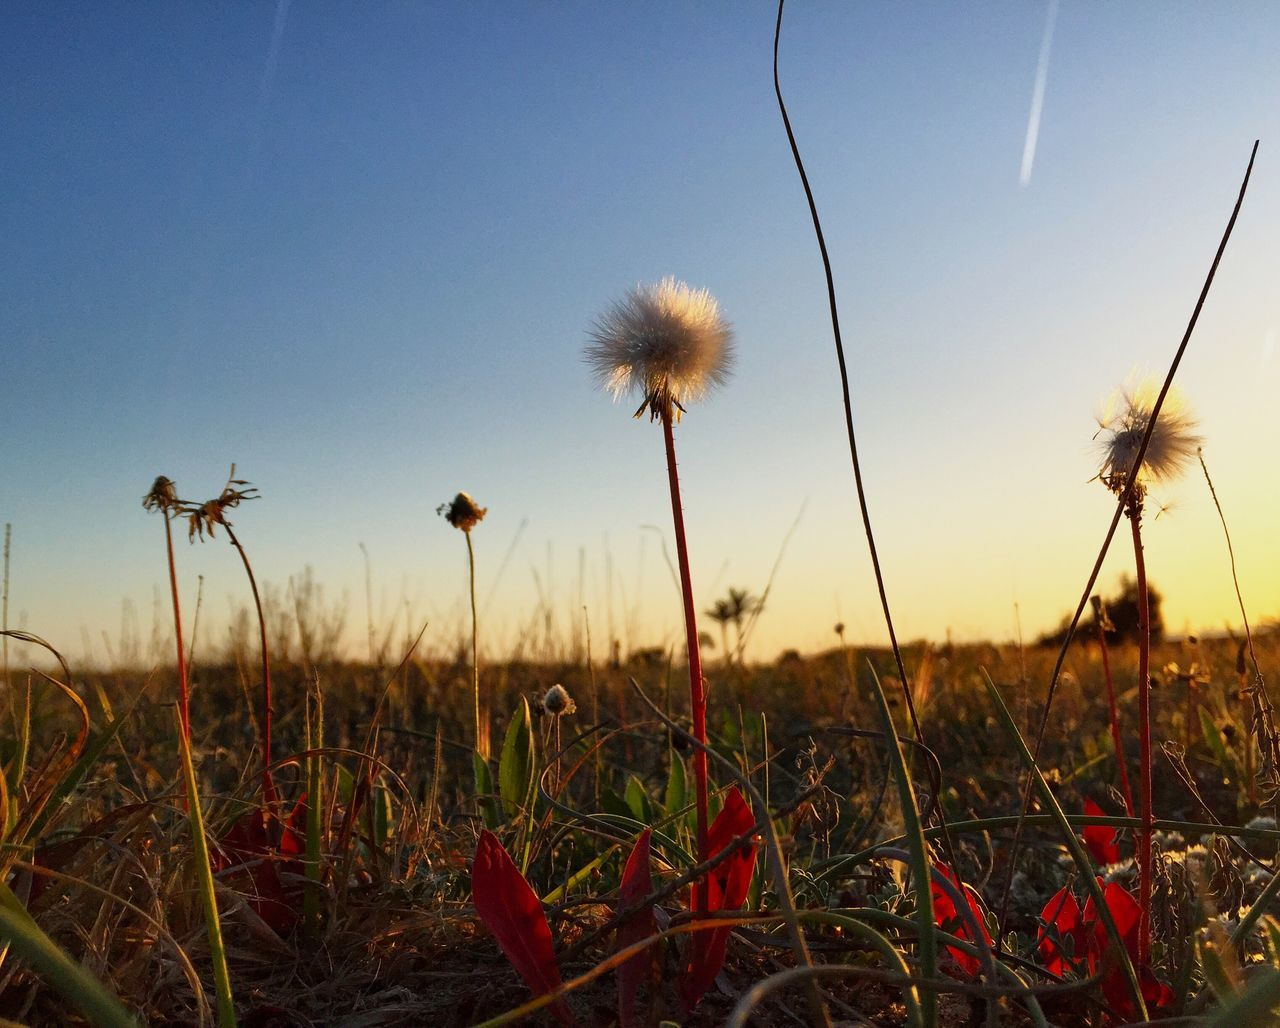 Growth Nature Field Flower Plant Beauty In Nature No People Outdoors Uncultivated Grass Tranquility Day Fragility Sky Agriculture Freshness Landscape Rural Scene Scenics Flower Head On The Beach Nature Photography Freshness Landscape_Collection Eye4photography